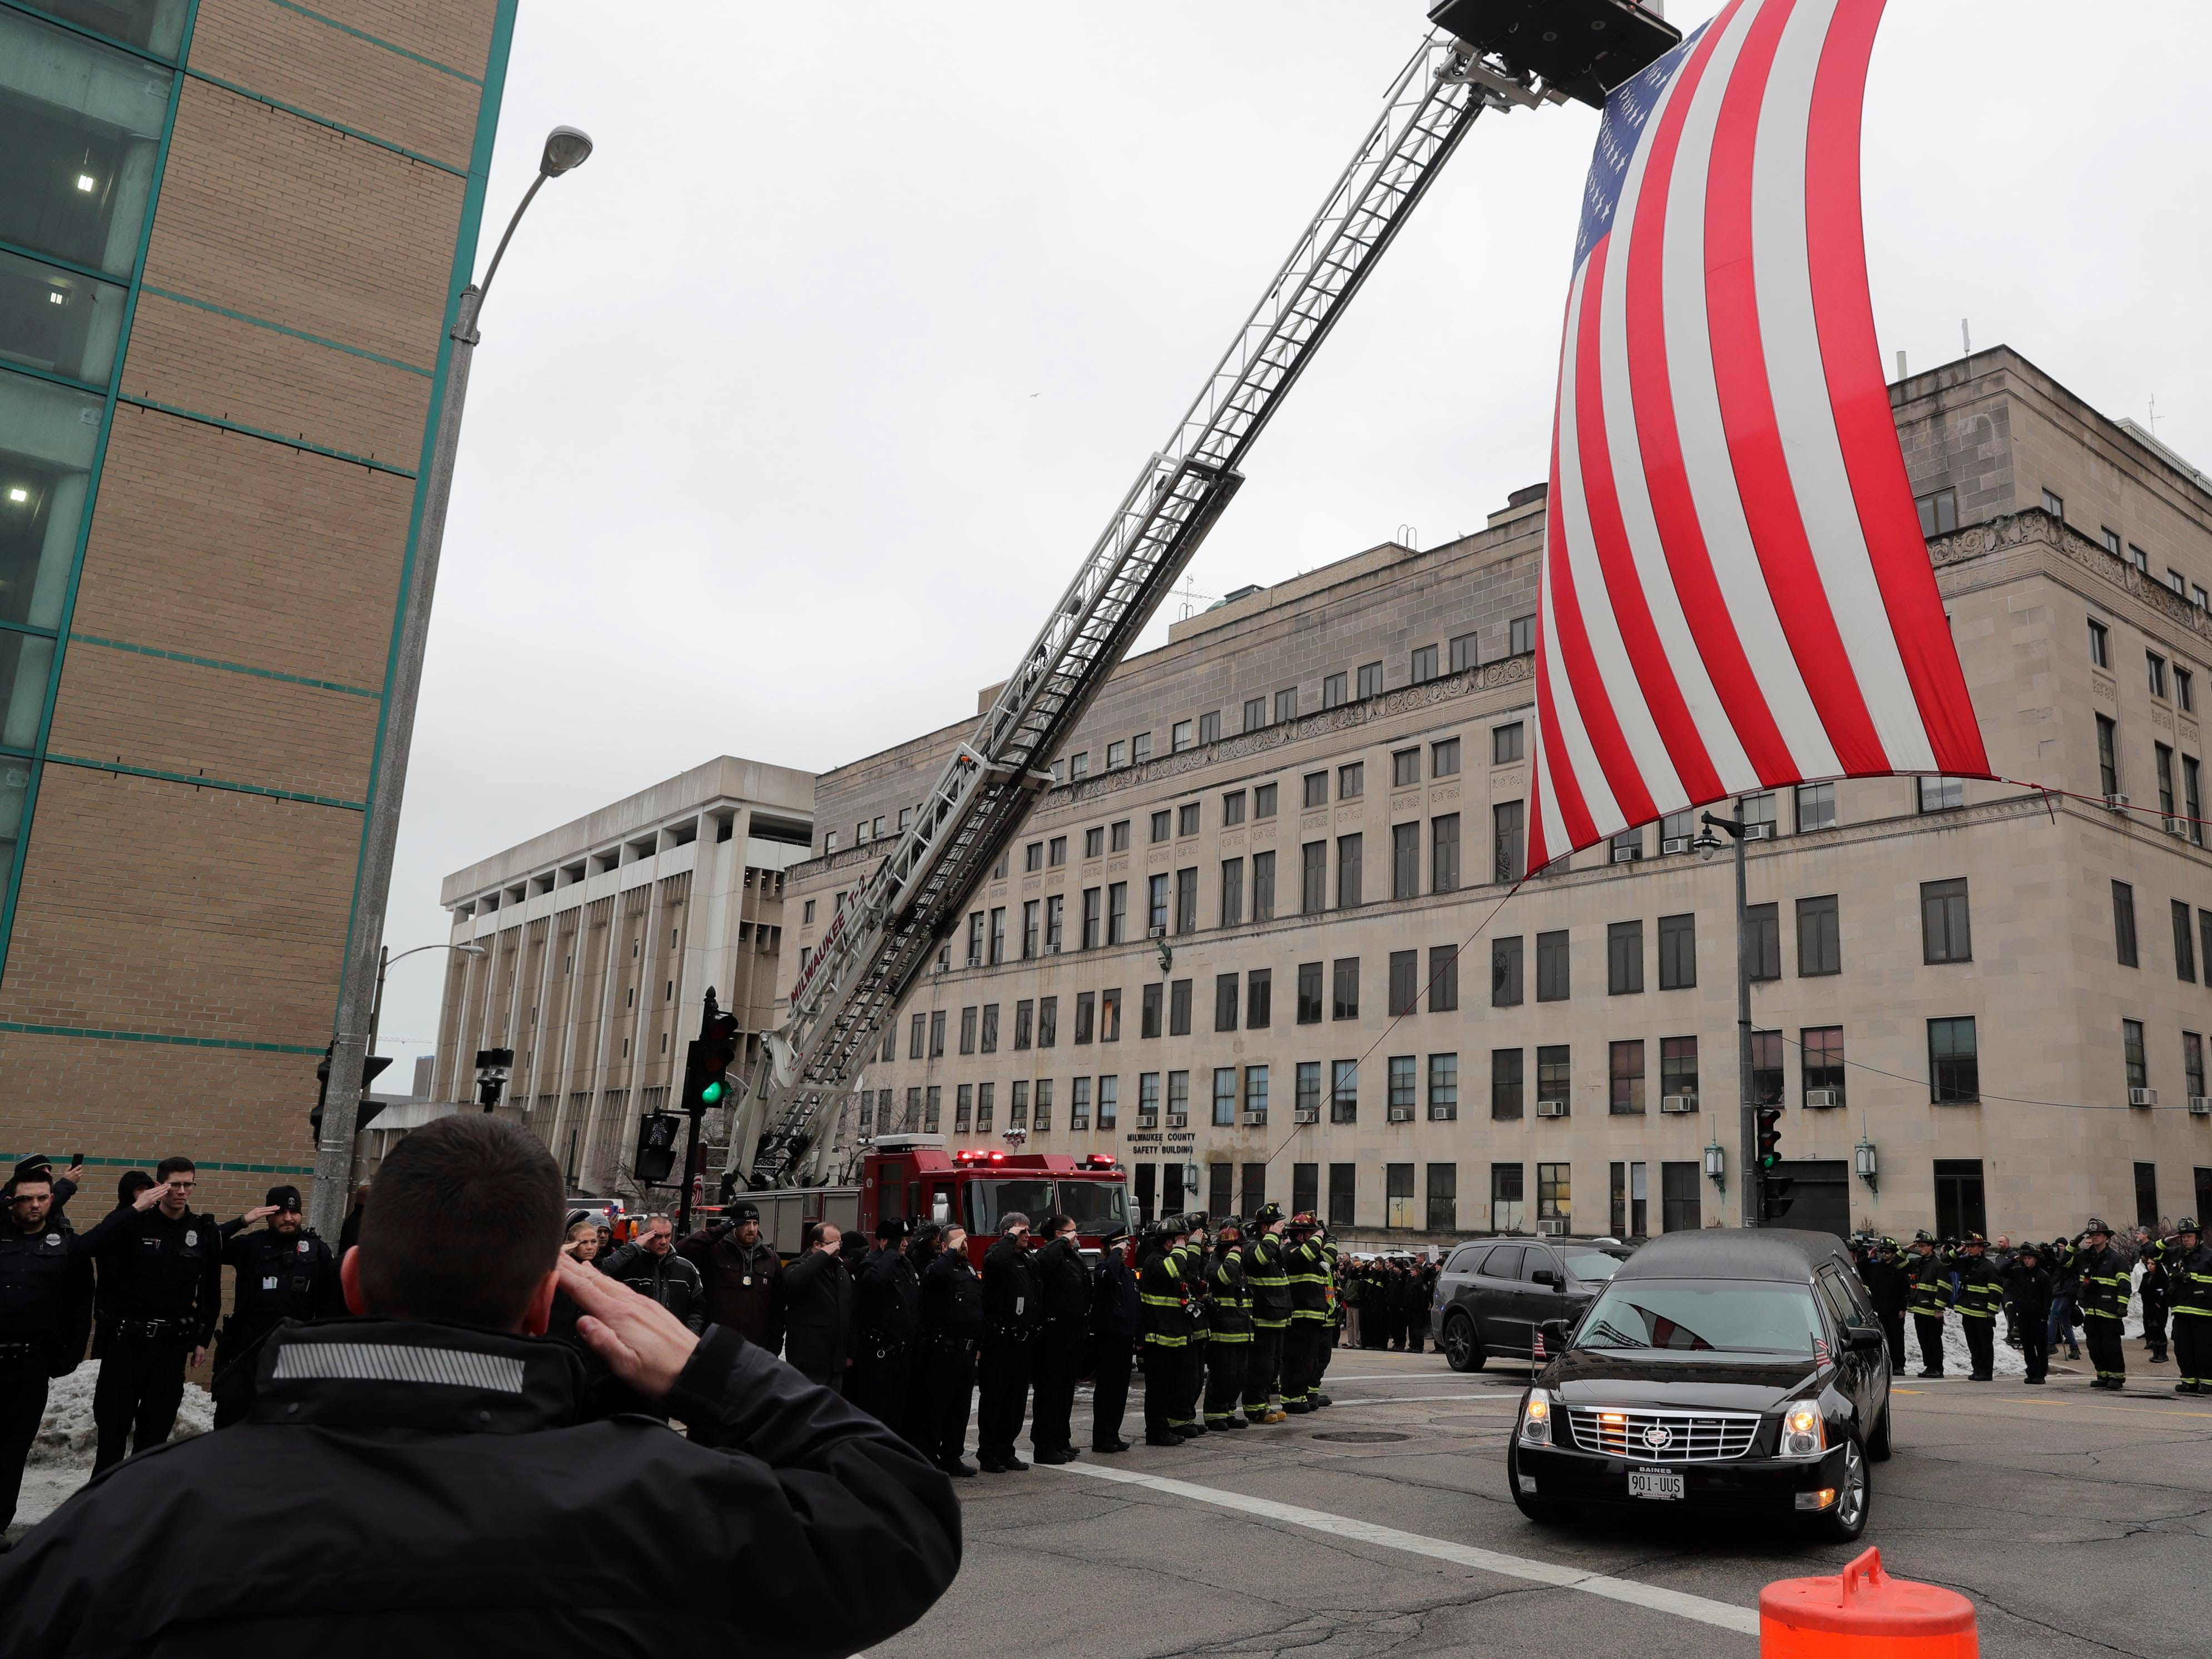 The hearse containing the body of the officer passes under a flag that was raised by The Milwaukee Fire Department at the intersection of 9th and State streets.